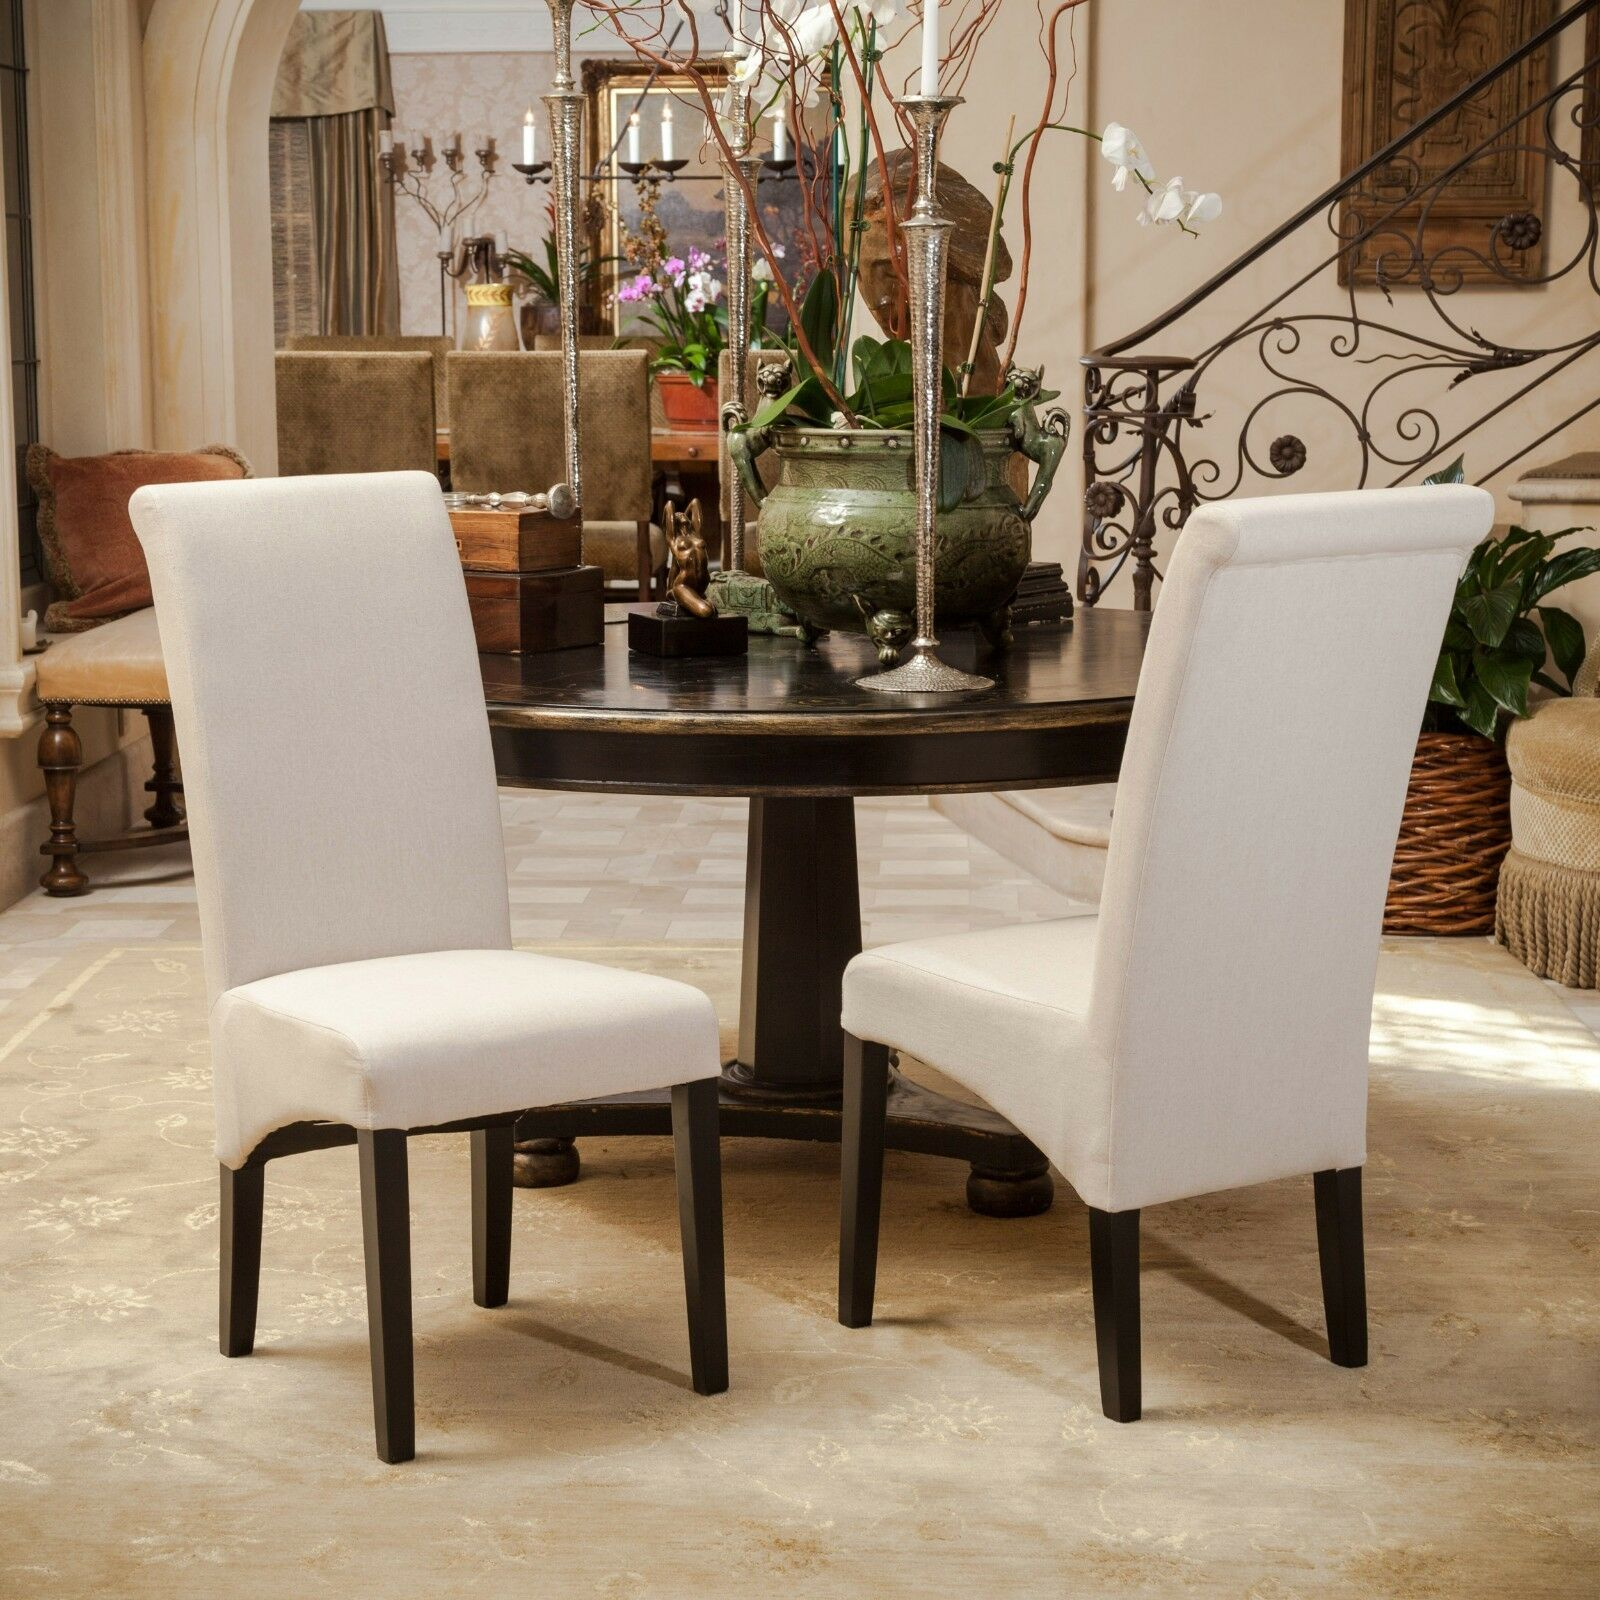 picture 1 of 3 - Parsons Dining Chairs